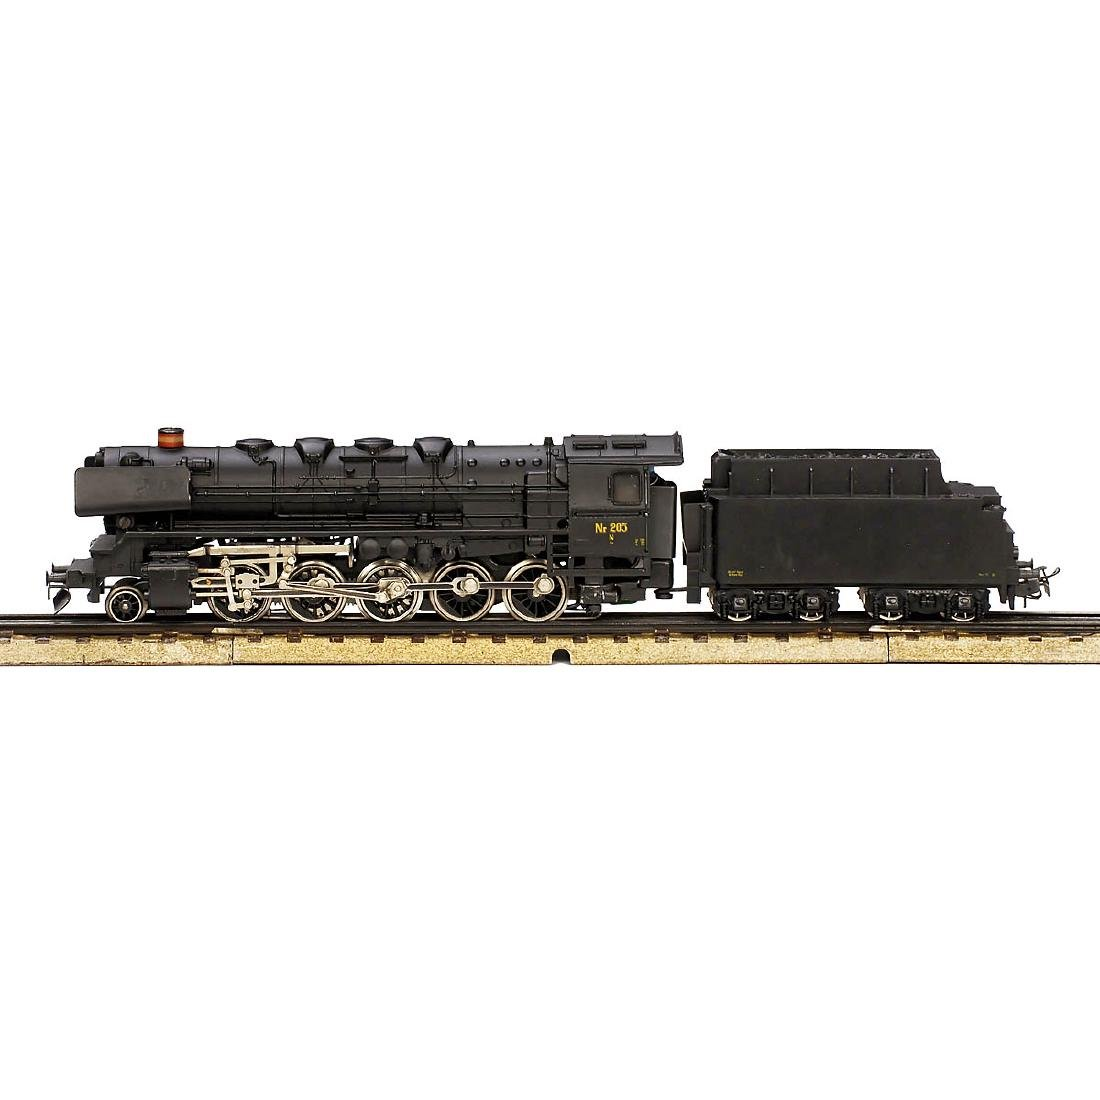 Märklin No. 3045 Danish Steam Locomotive, c. 1975 - 2